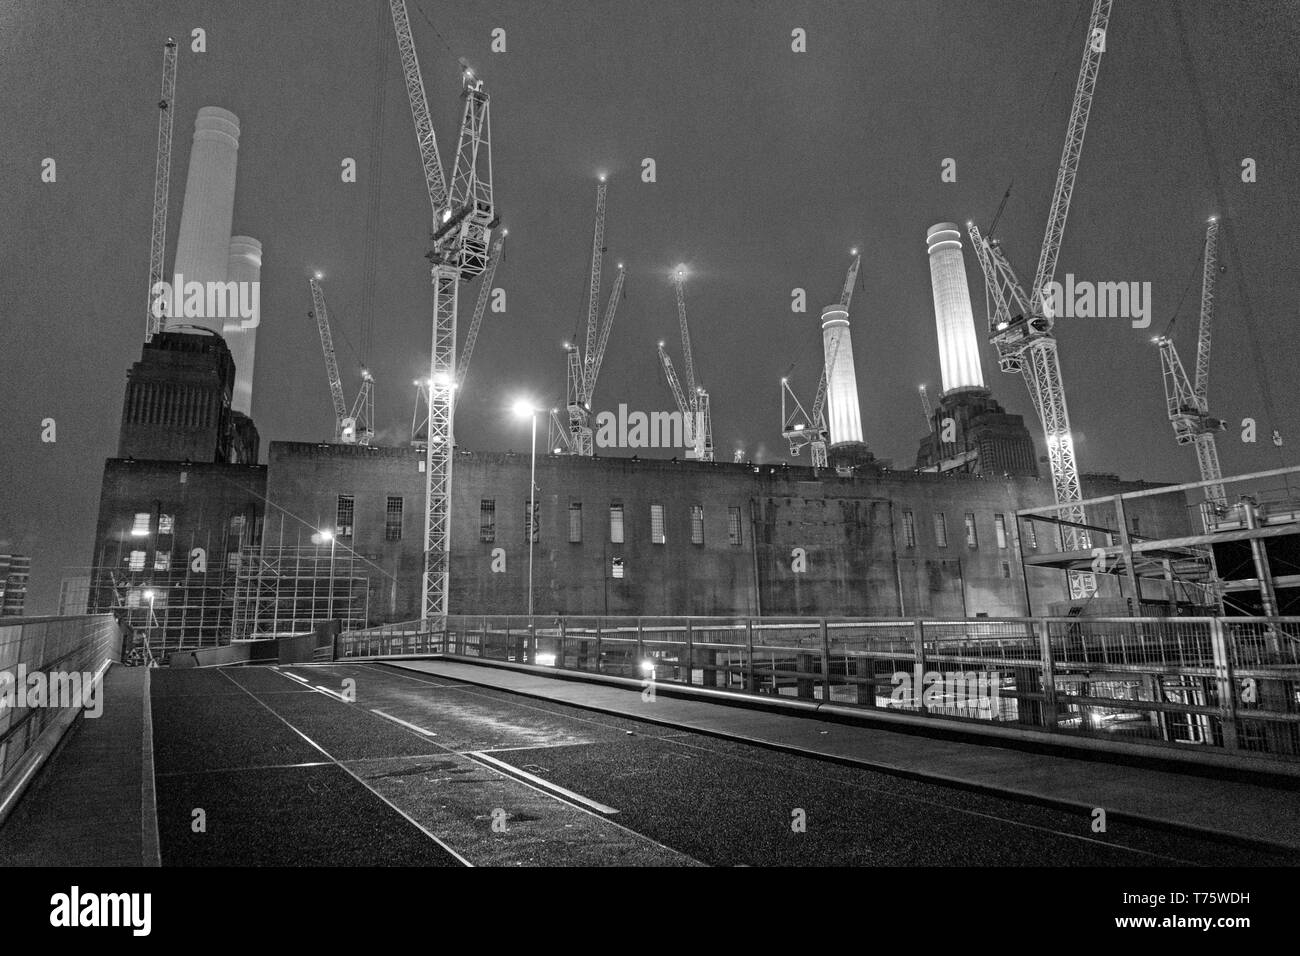 The eastern entrance to Circus West Village via Pump House Lane opens by Battersea Power Station in London on December 20, 2017 - Stock Image